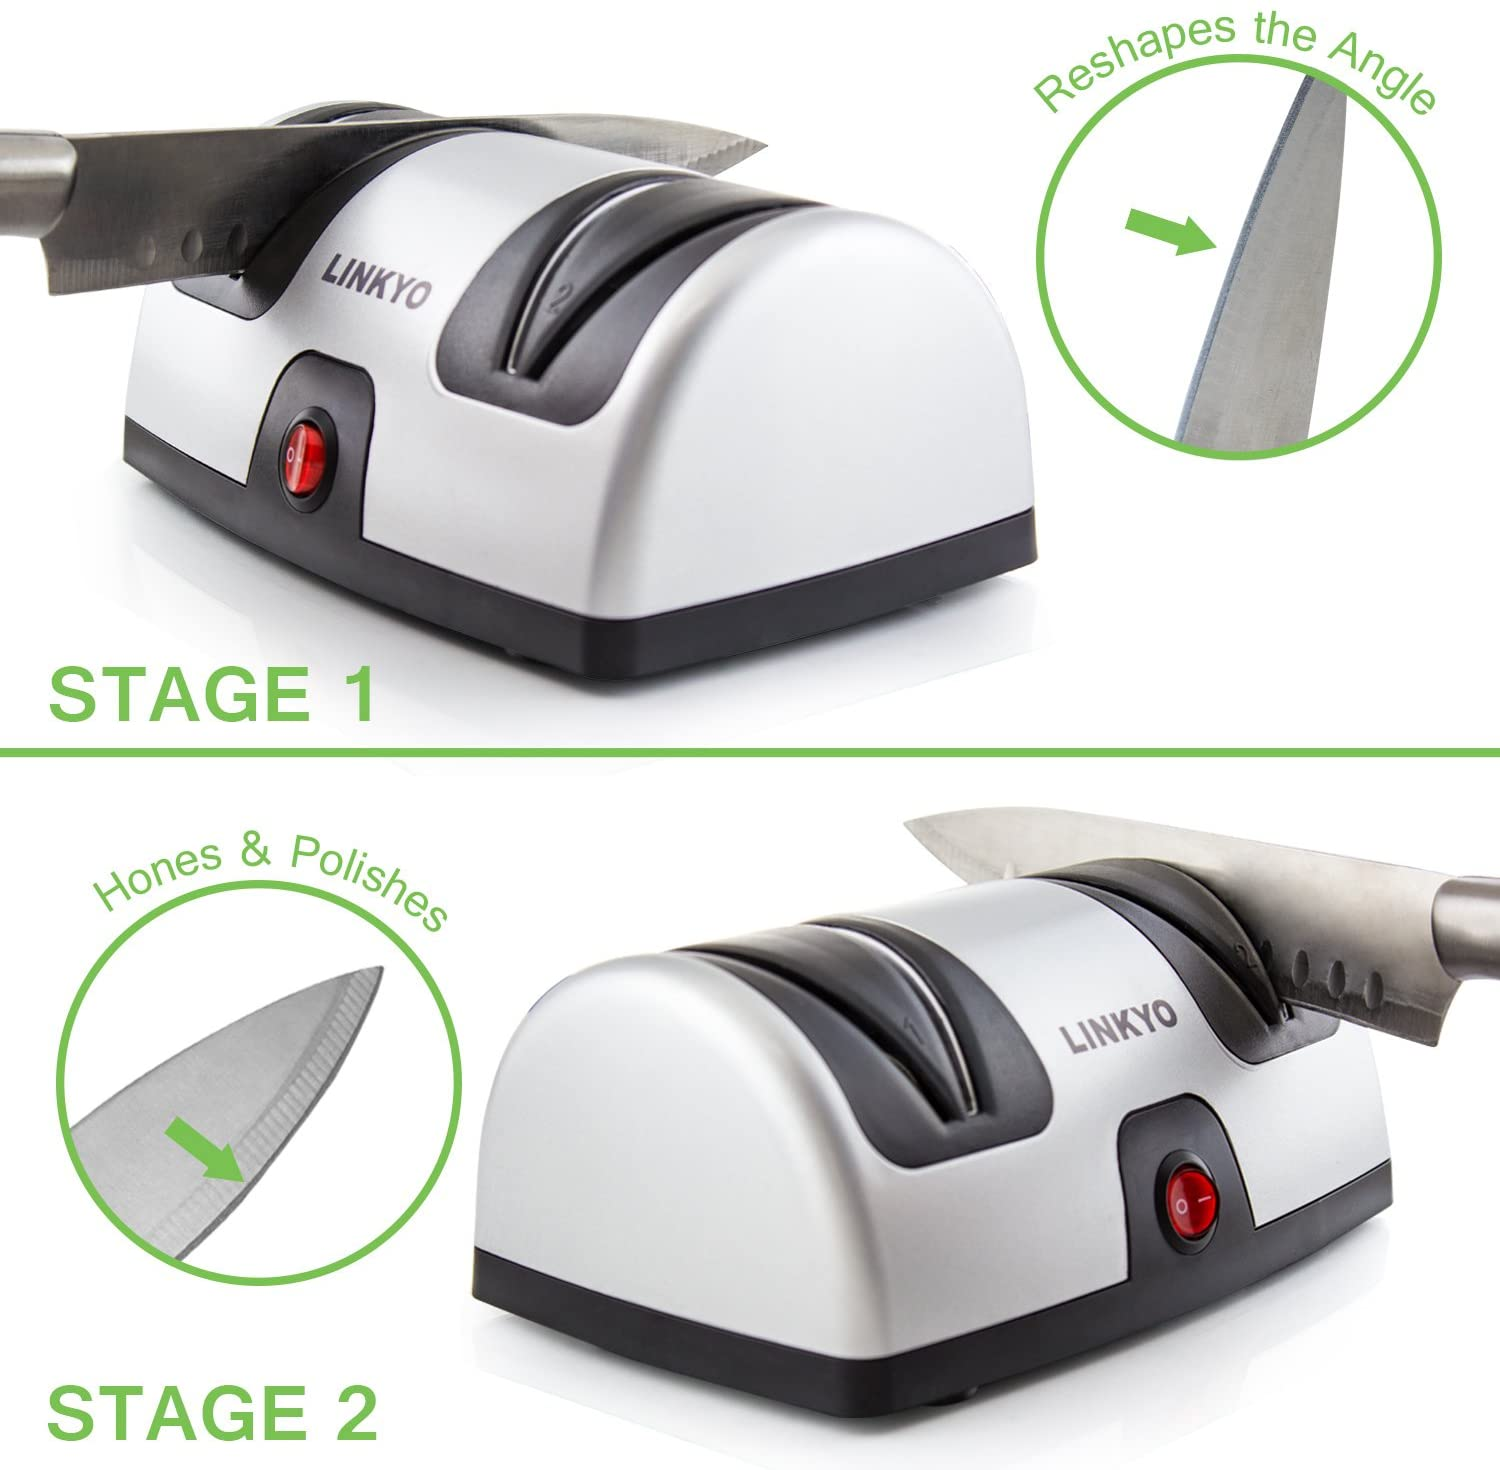 Linkyo Electric Knife Sharpener process